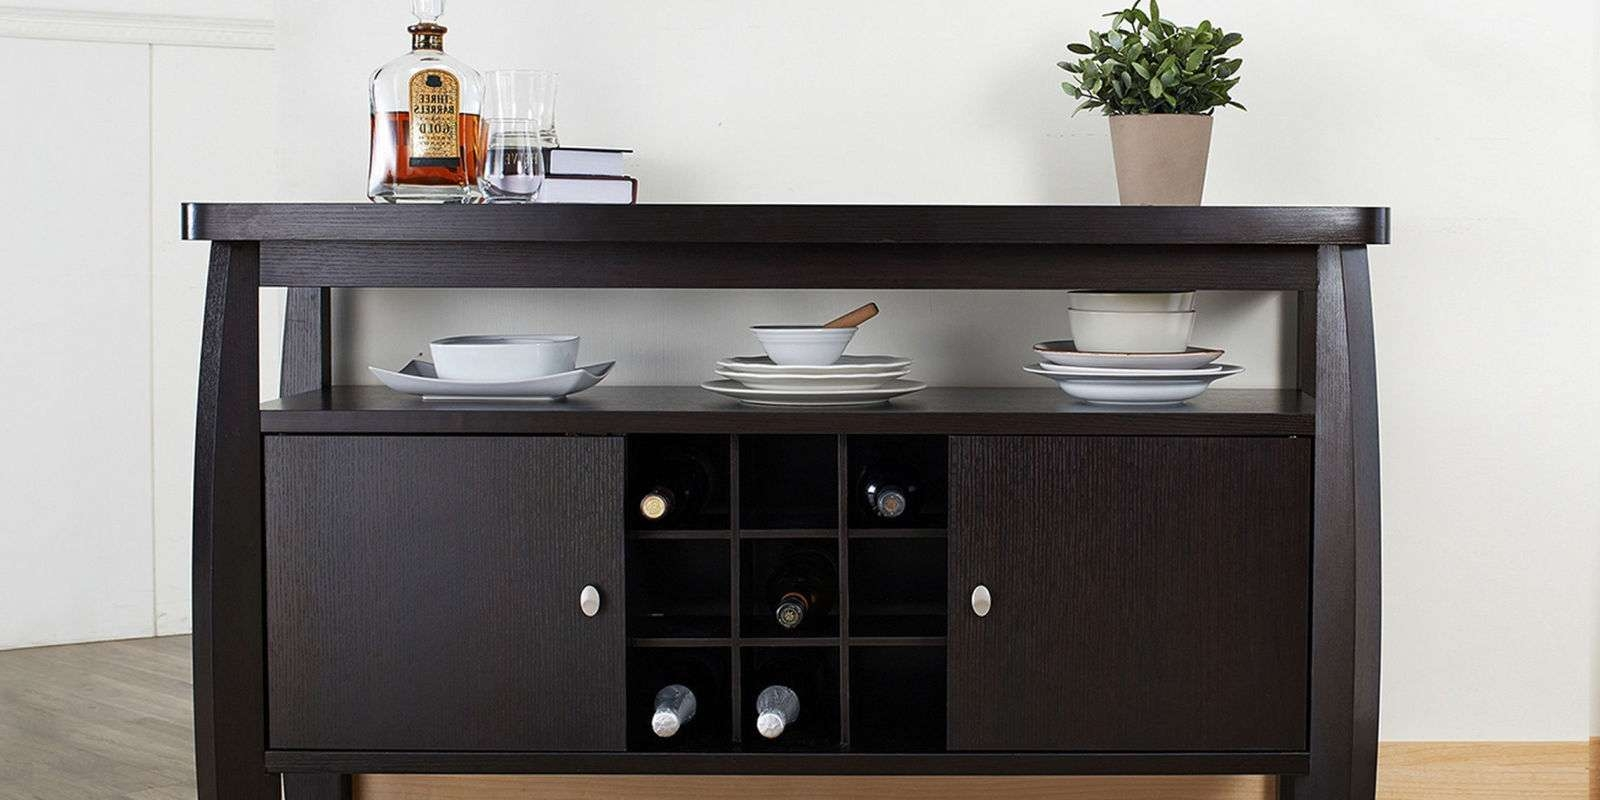 11 Best Sideboards And Buffets In 2018 – Reviews Of Sideboards With Regard To Dining Room Buffets Sideboards (View 11 of 20)